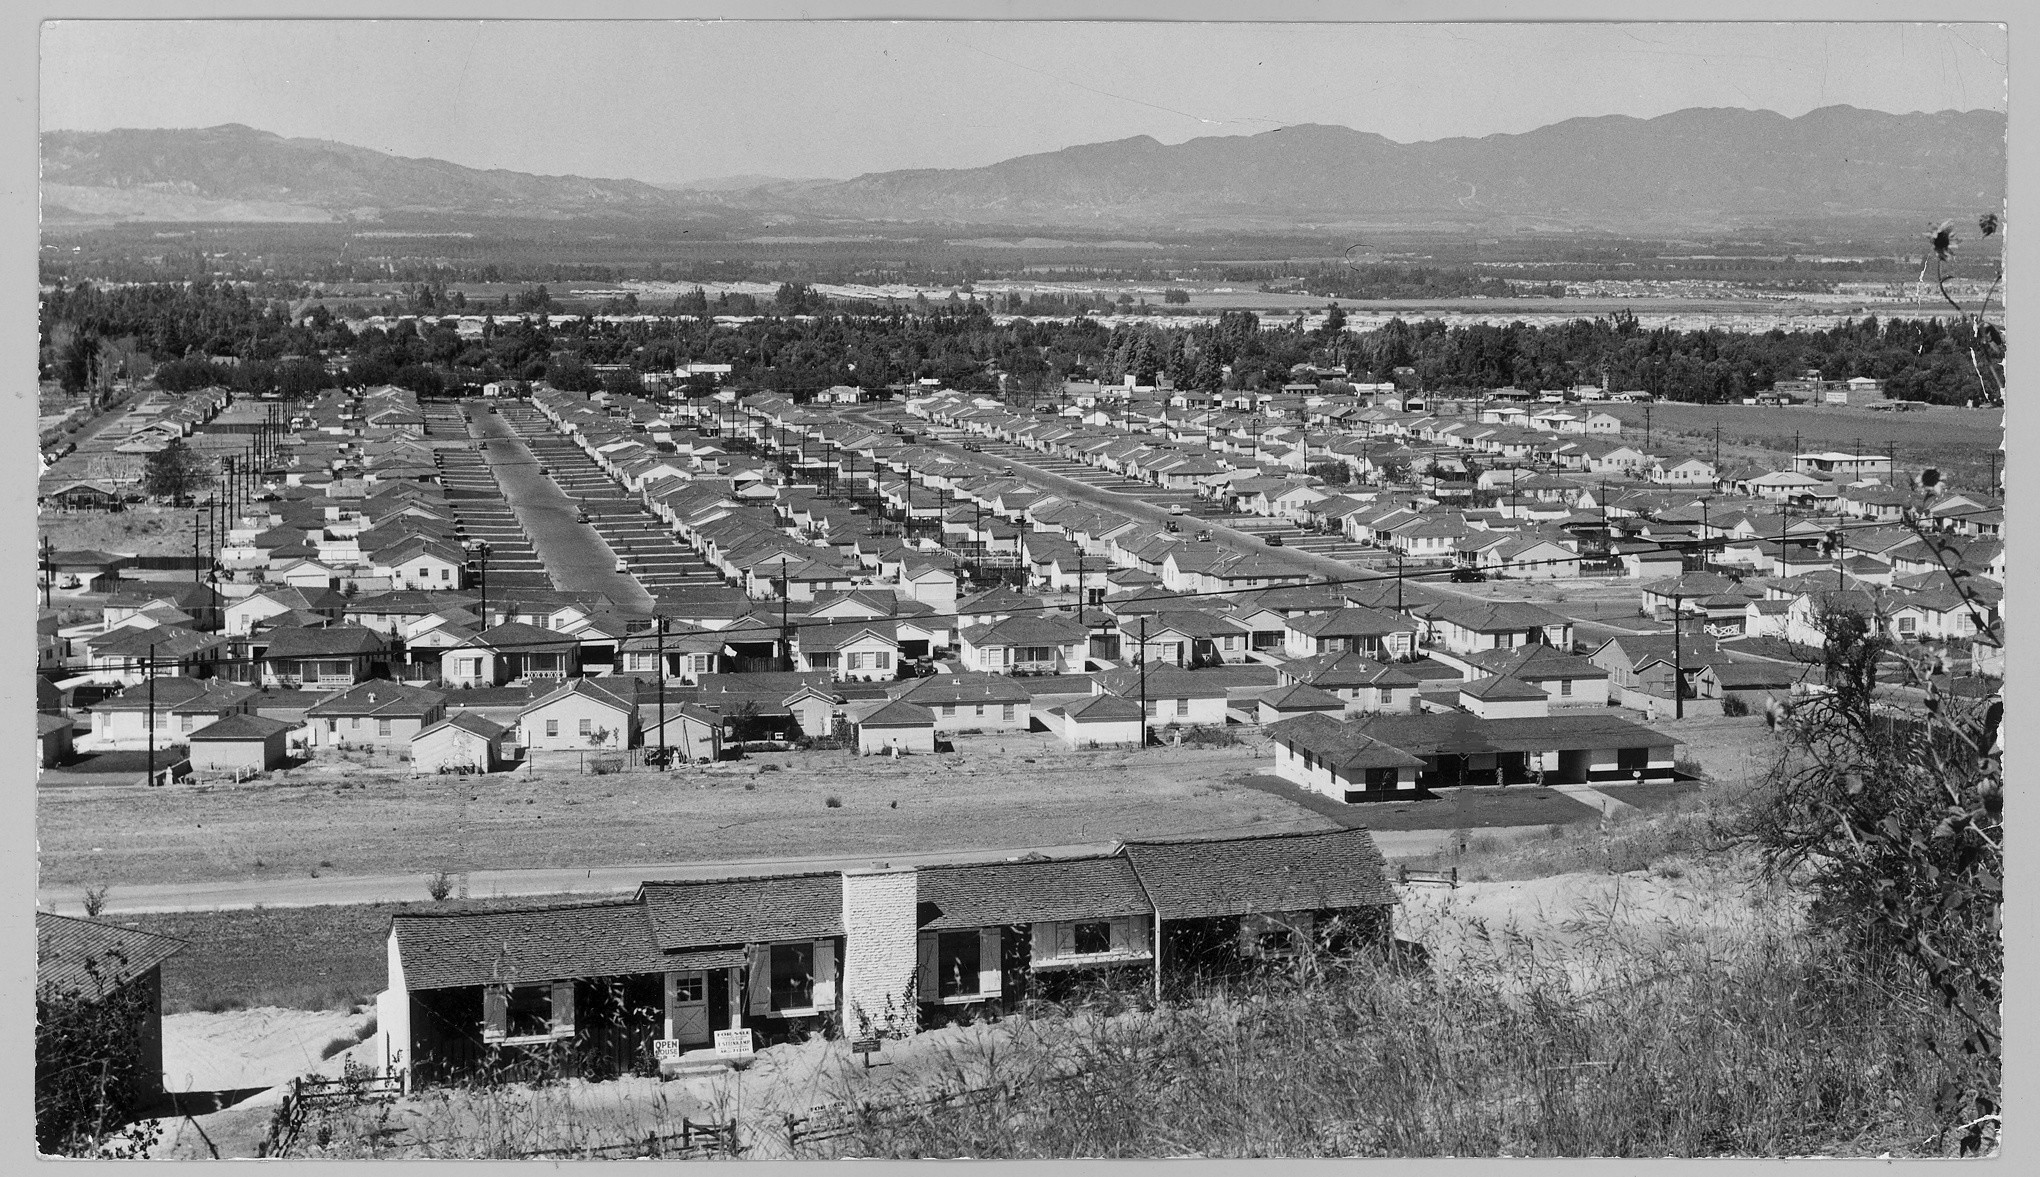 Tract homes line the streets of Encino in 1950.